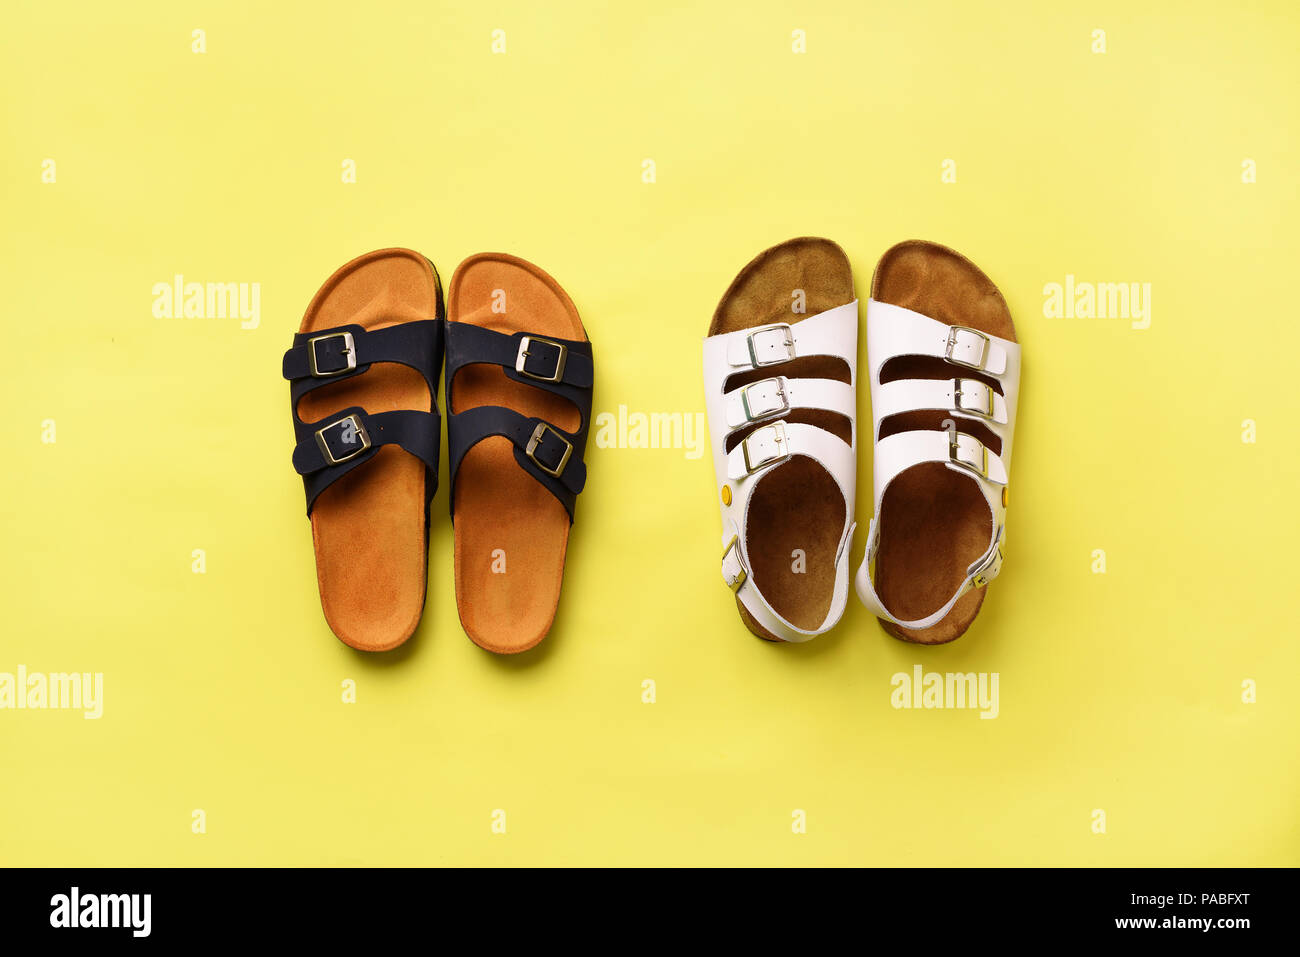 571518aa16e19 Summer female shoes - sandals (birkenstock) and slippers on yellow  background with copy space